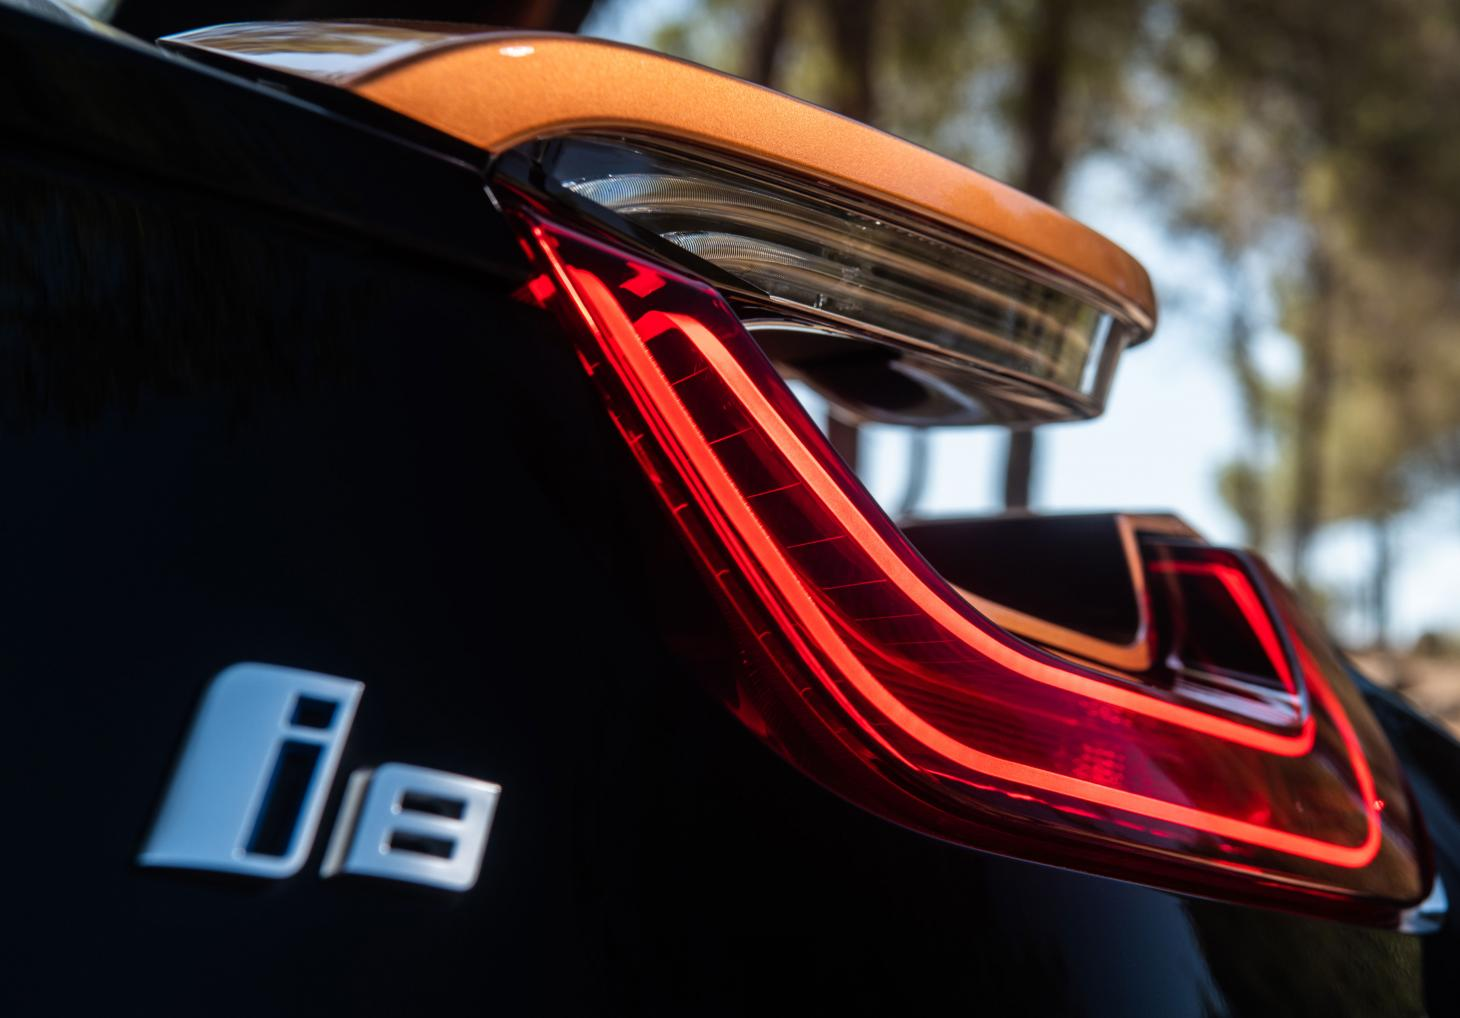 Taillight of BMW i8 Roadster